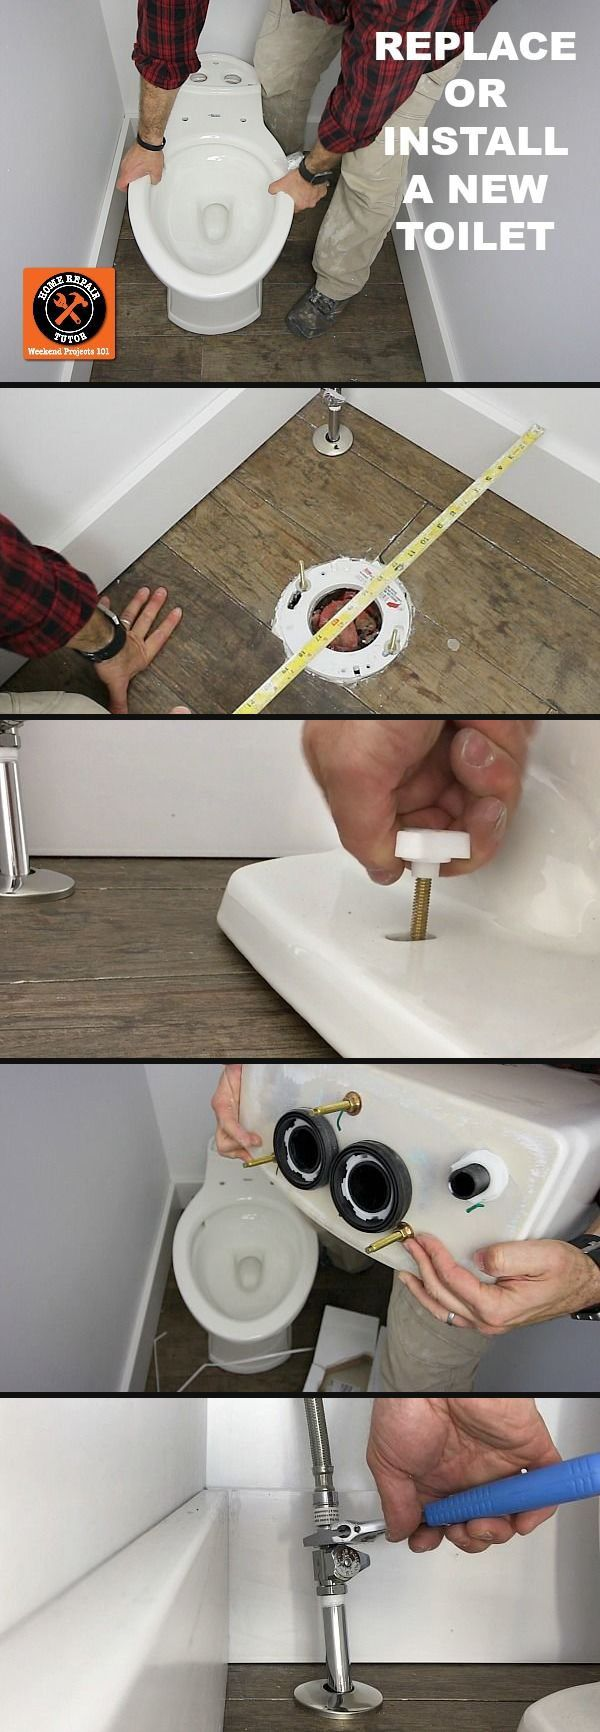 How to Replace a Toilet (Step-by-Step)